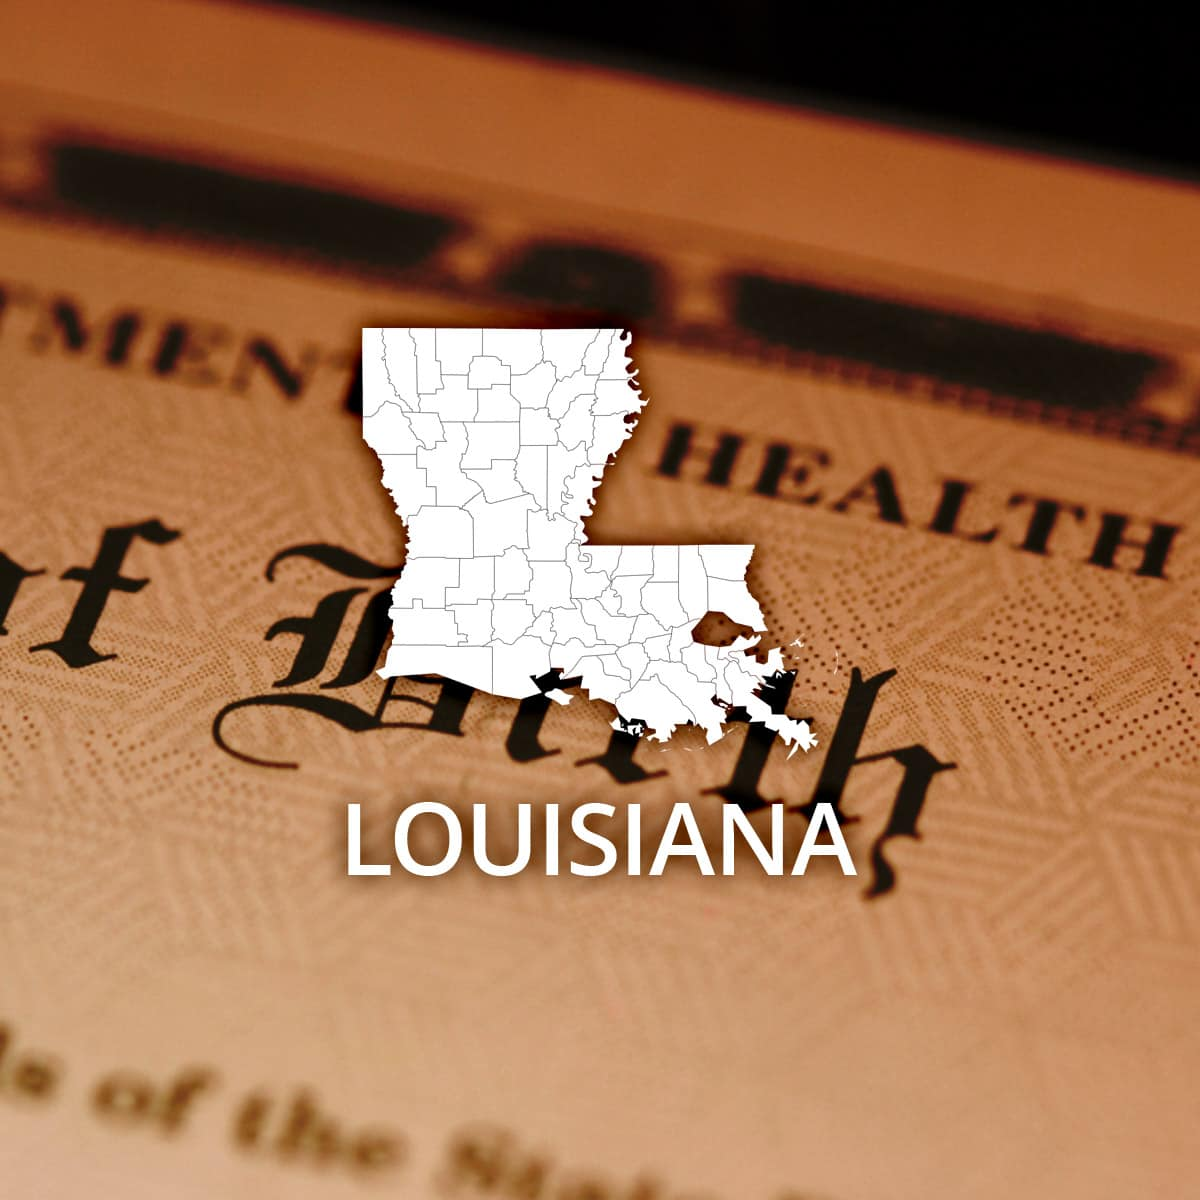 Where To Obtain A Louisiana Birth Certificate